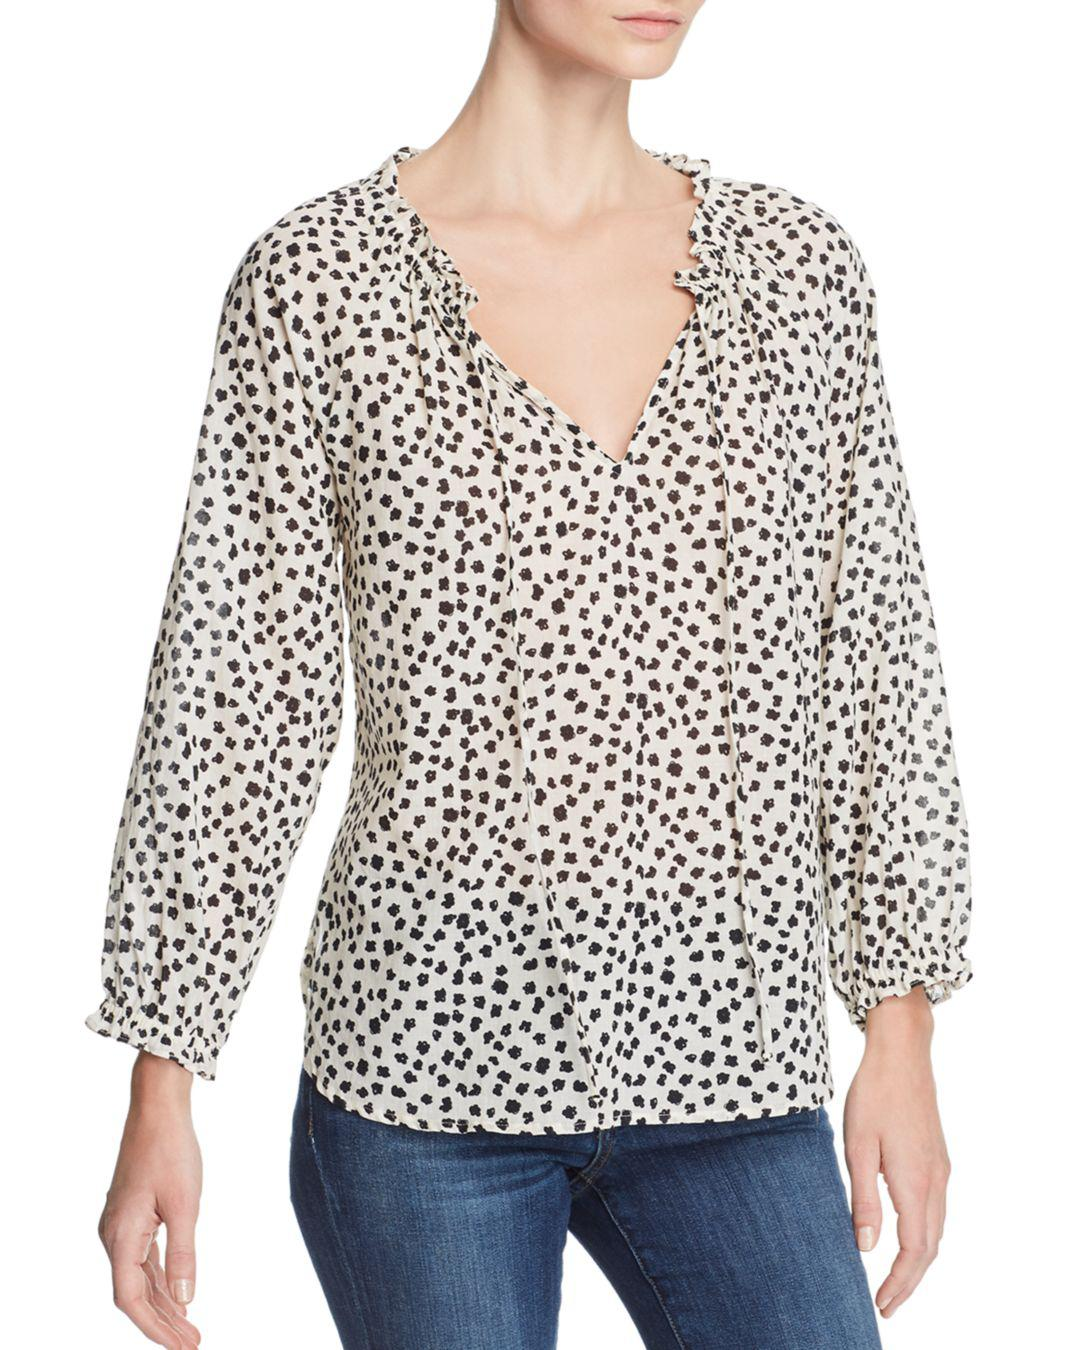 e51a7846f4c3 velvet-by-graham-and-spencer-Calla-Freya-Floral-Print-Peasant-Top.jpeg